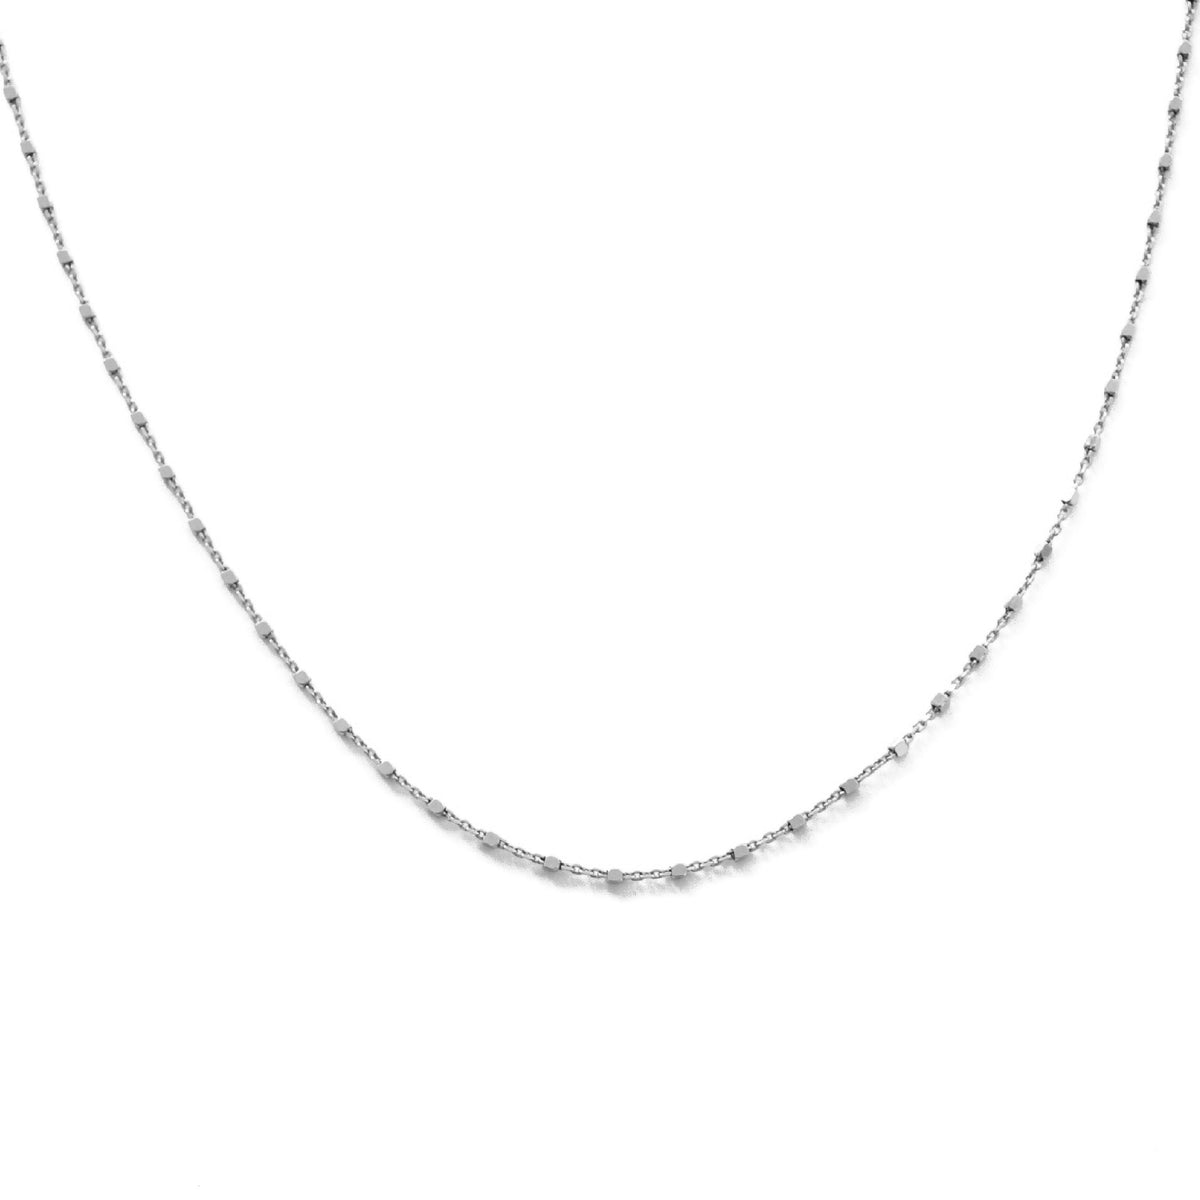 Diamond chain silver